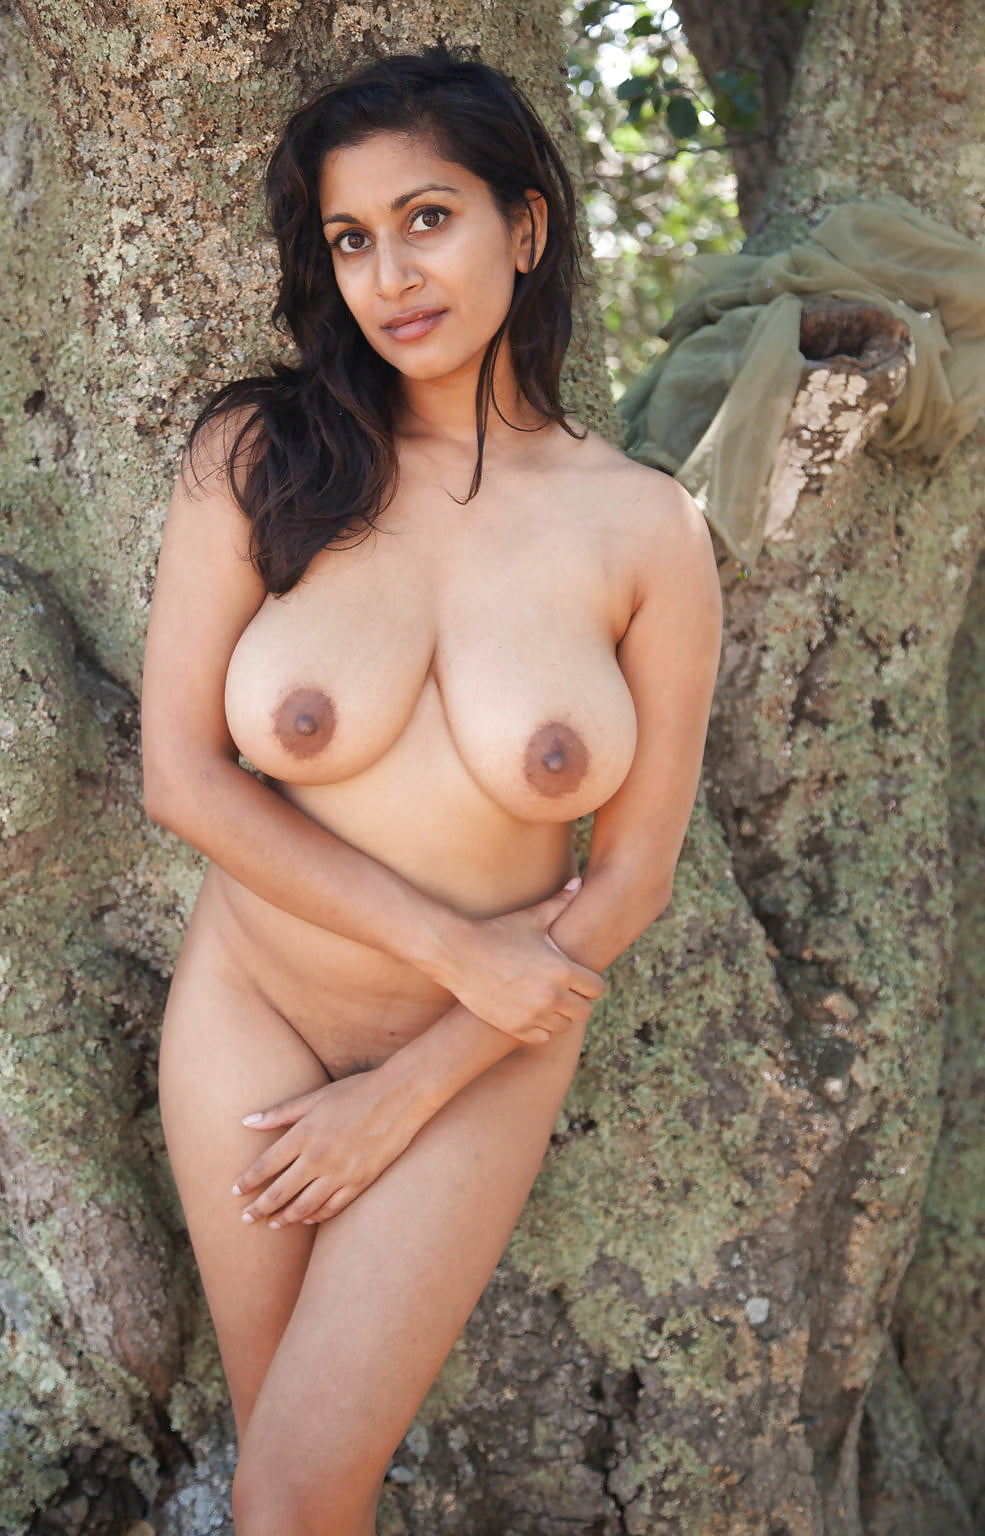 Shilo busty nude indian